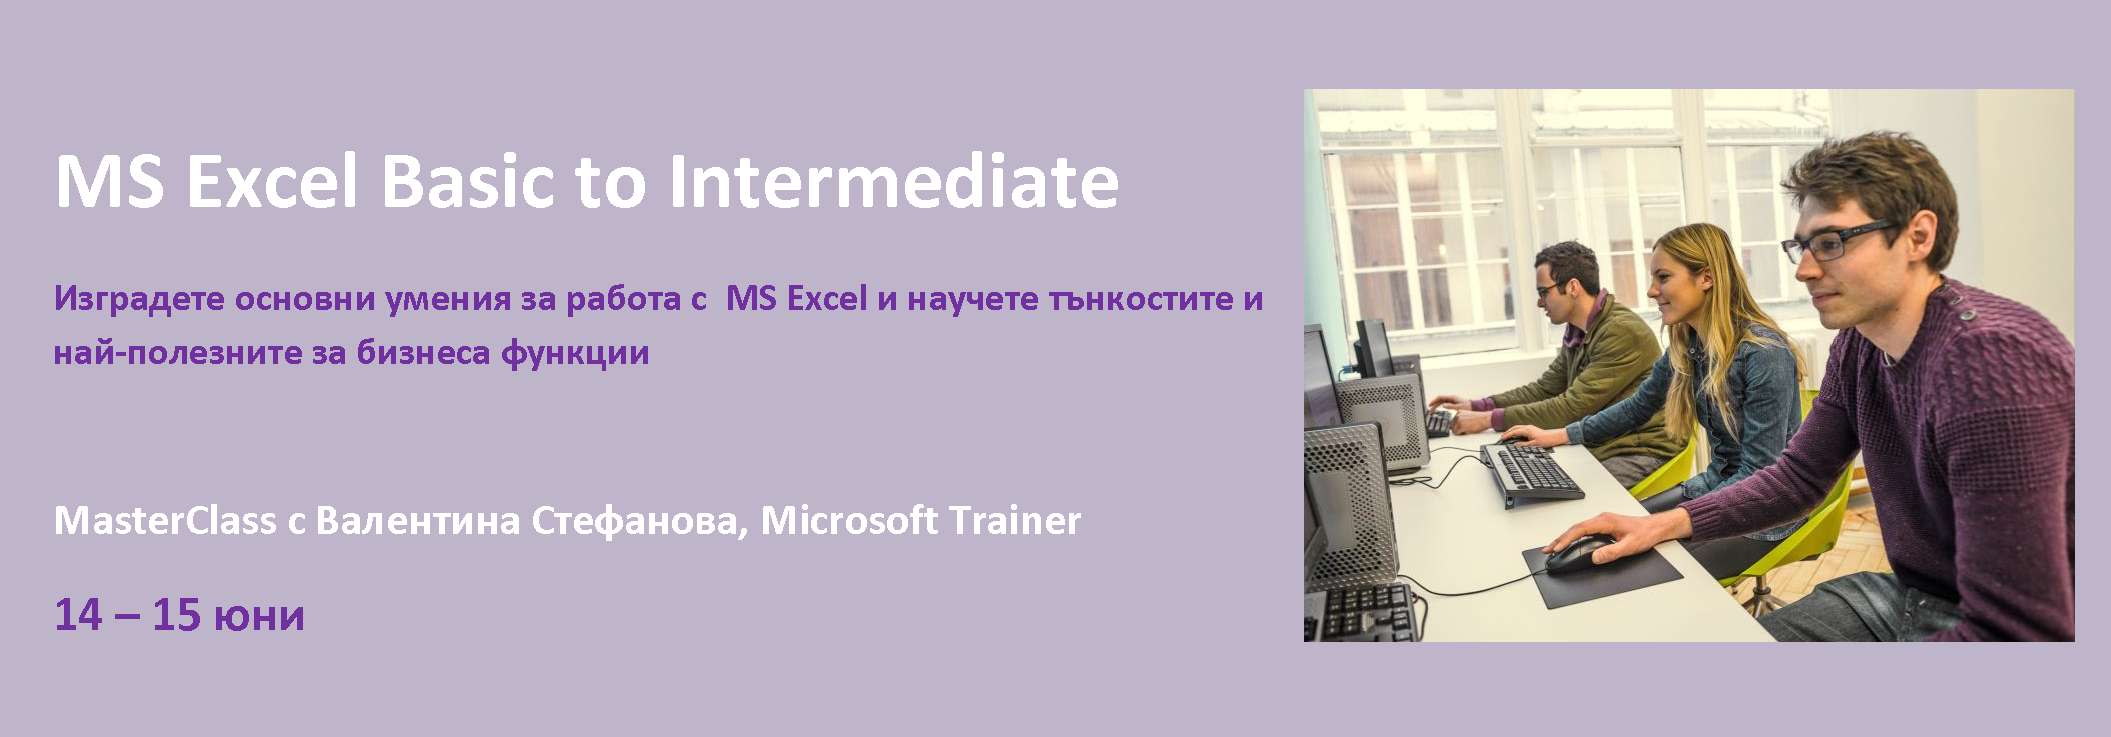 MS Excel 14 – 15 юни